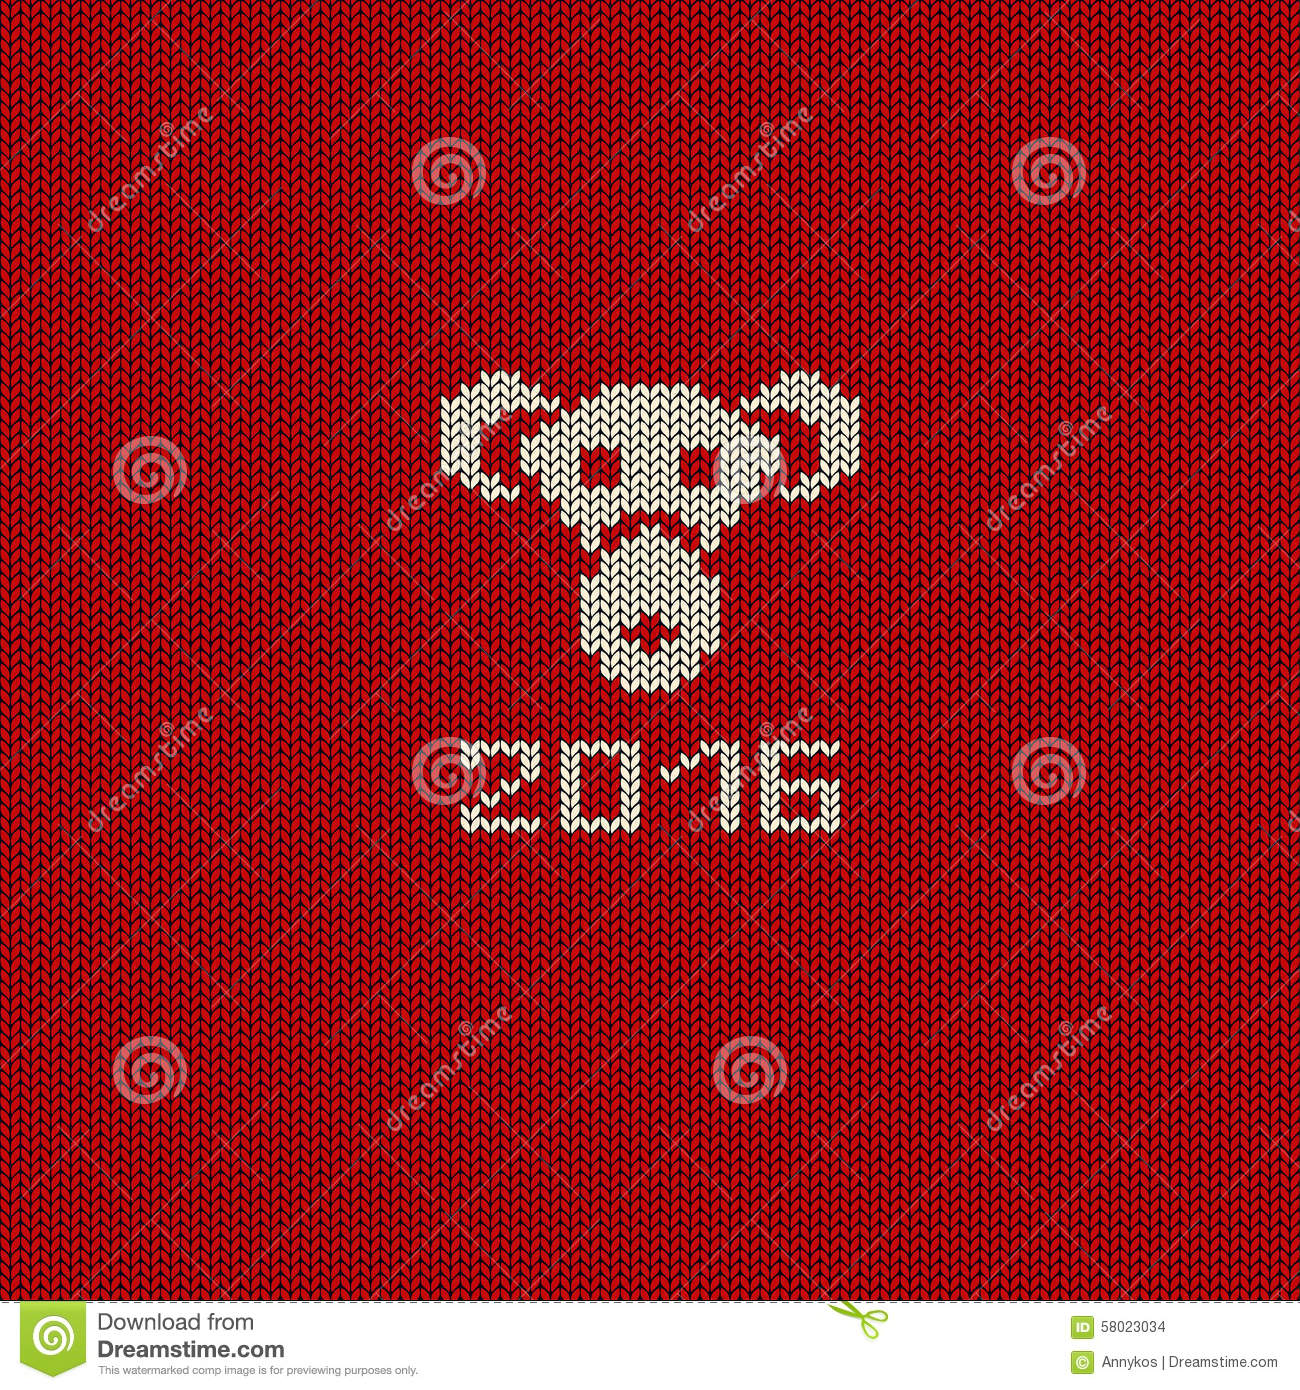 New Year Knitted Pattern Card With Monkey Face. Stock Vector ...